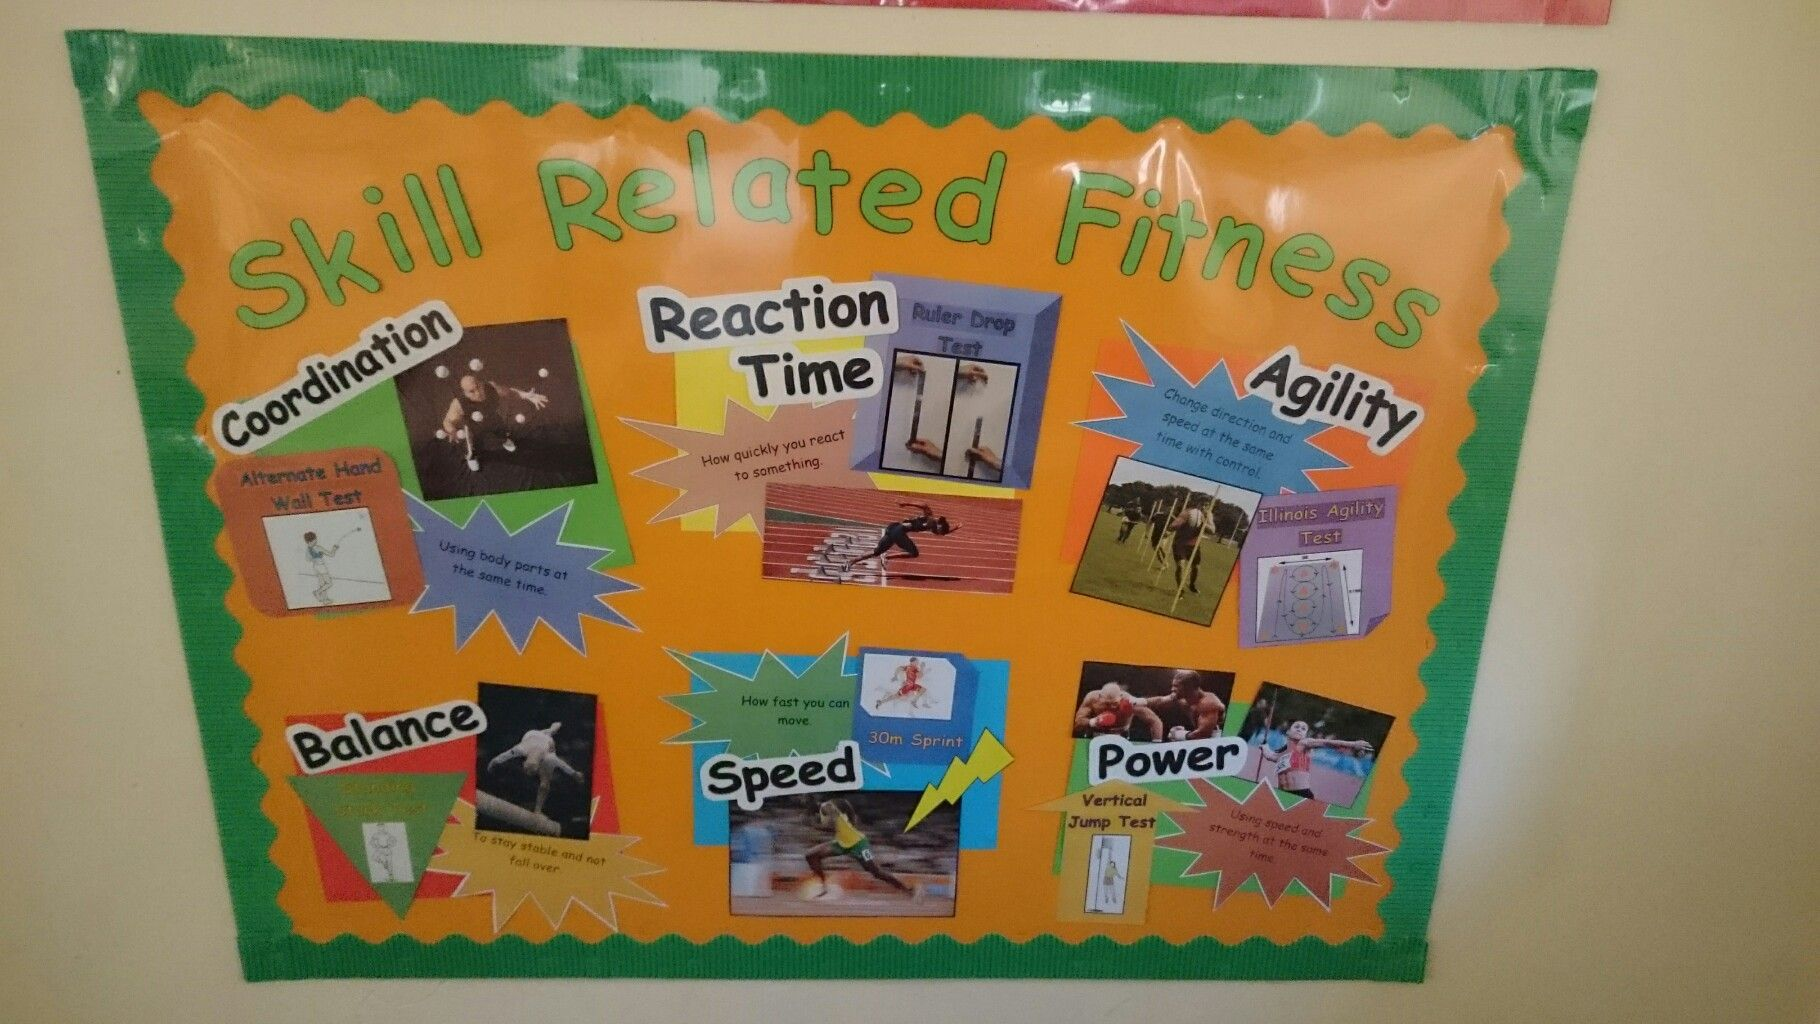 Skill Related Fitness PE Display Board by Alex